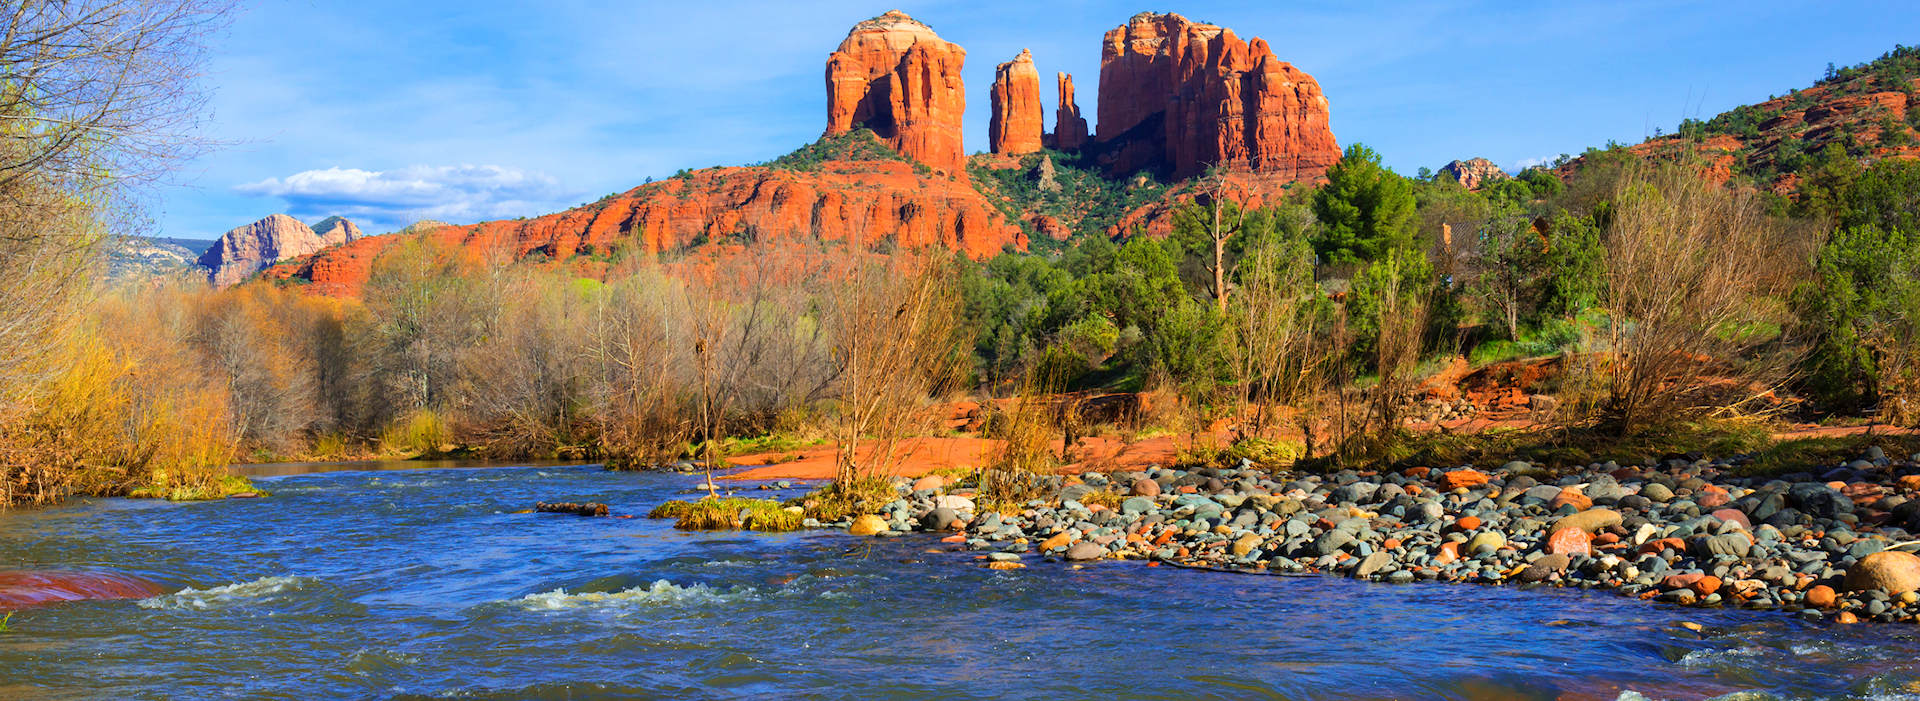 Greater Phoenix Economic Council Facts on Arizona Water Use